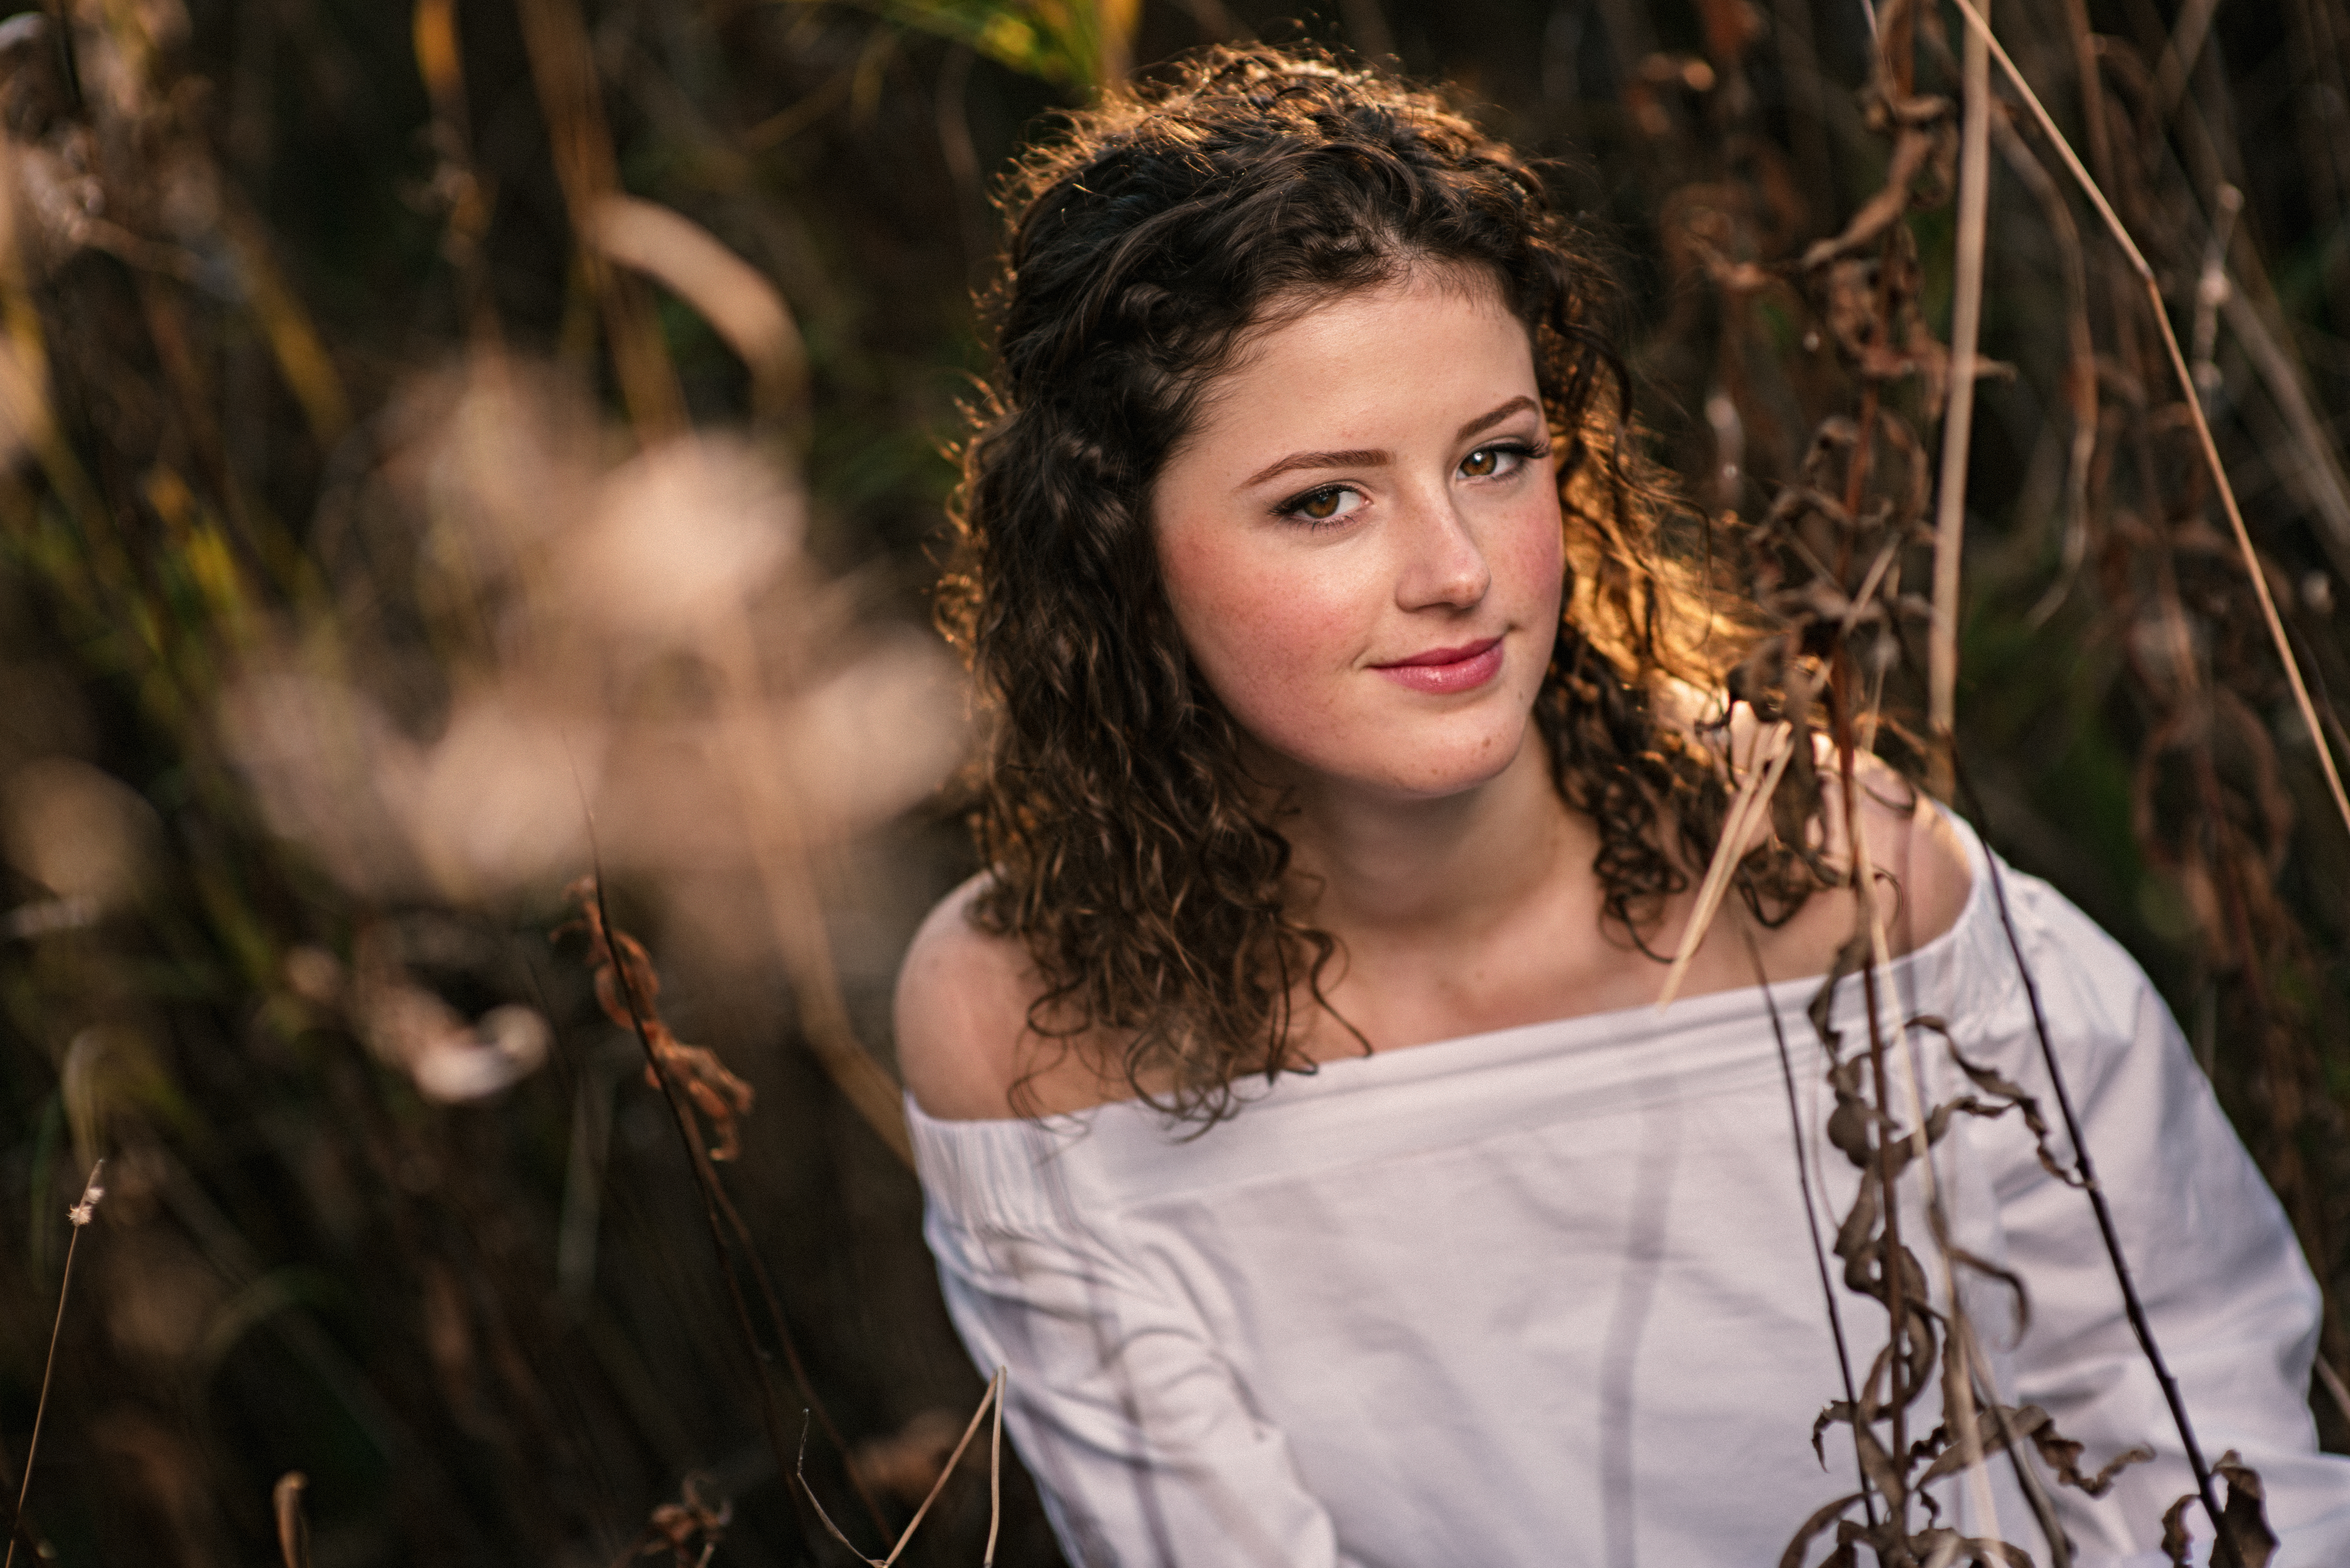 anchorage senior pictures field in the fall curly hair brunette white blouse